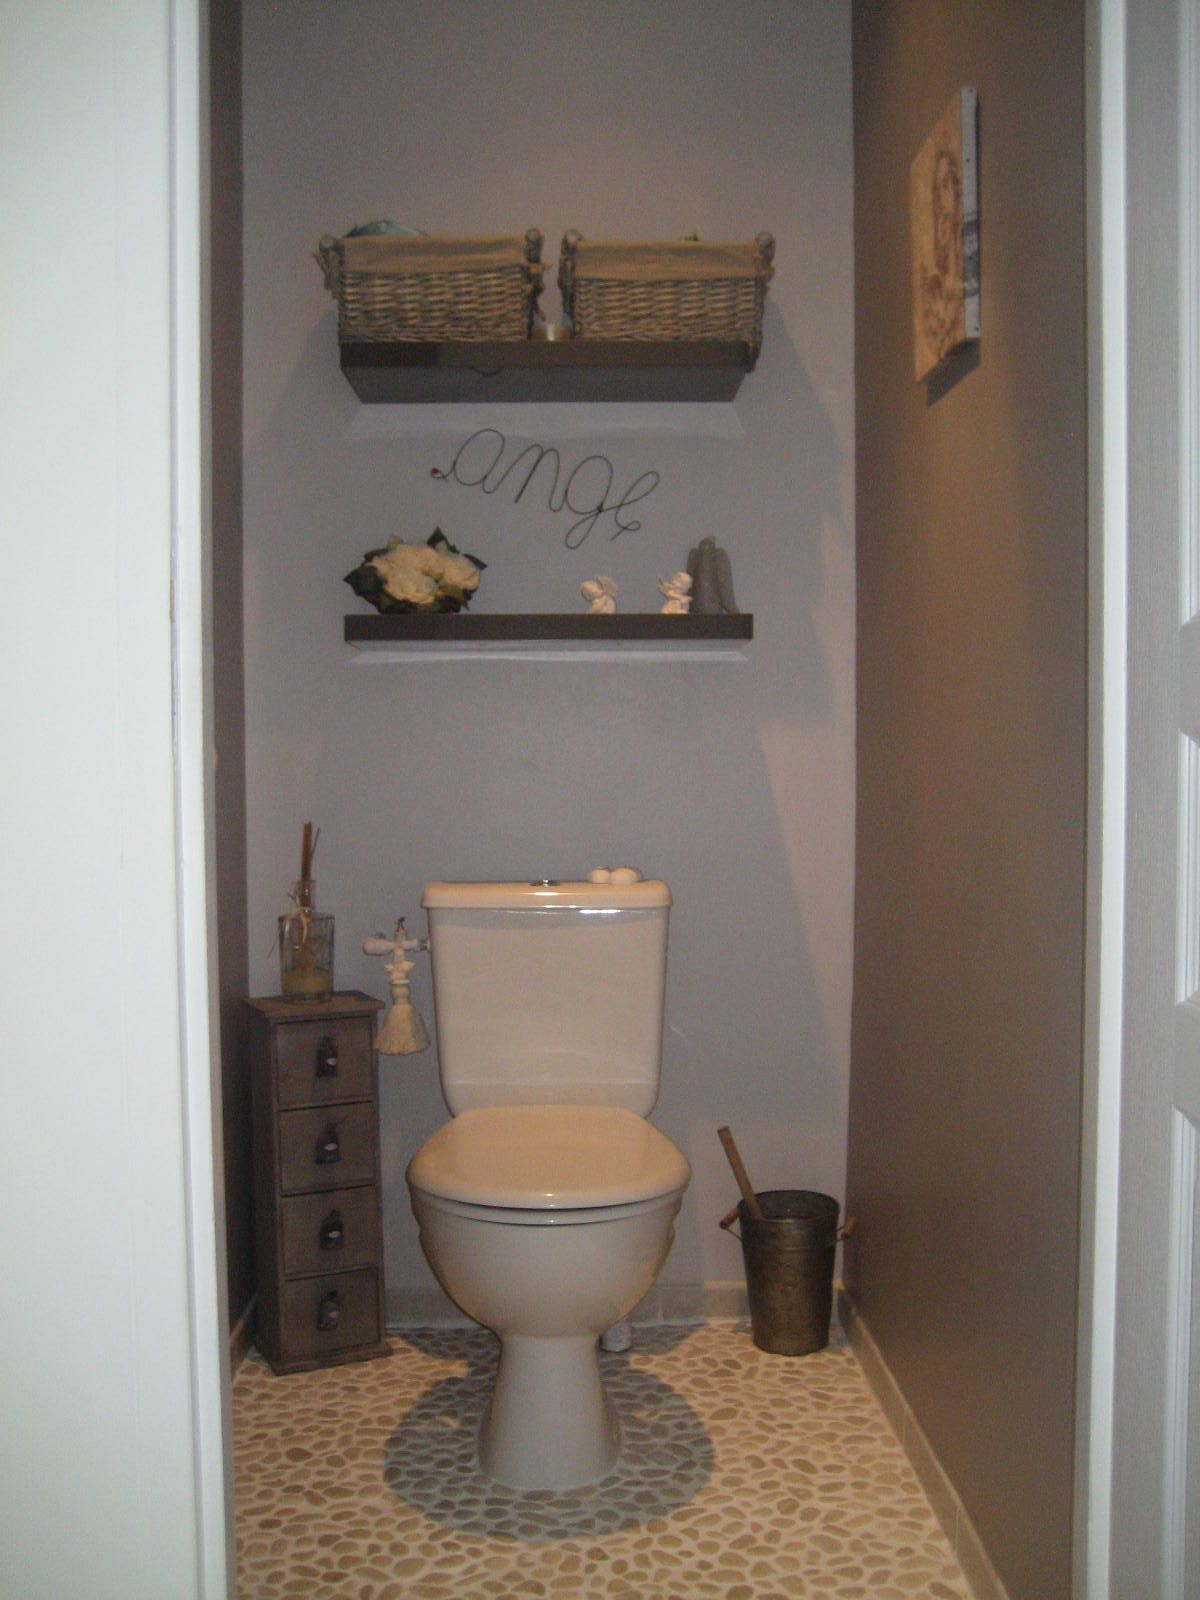 Toilette deco google search nouvelle maison for Peinture toilettes idee